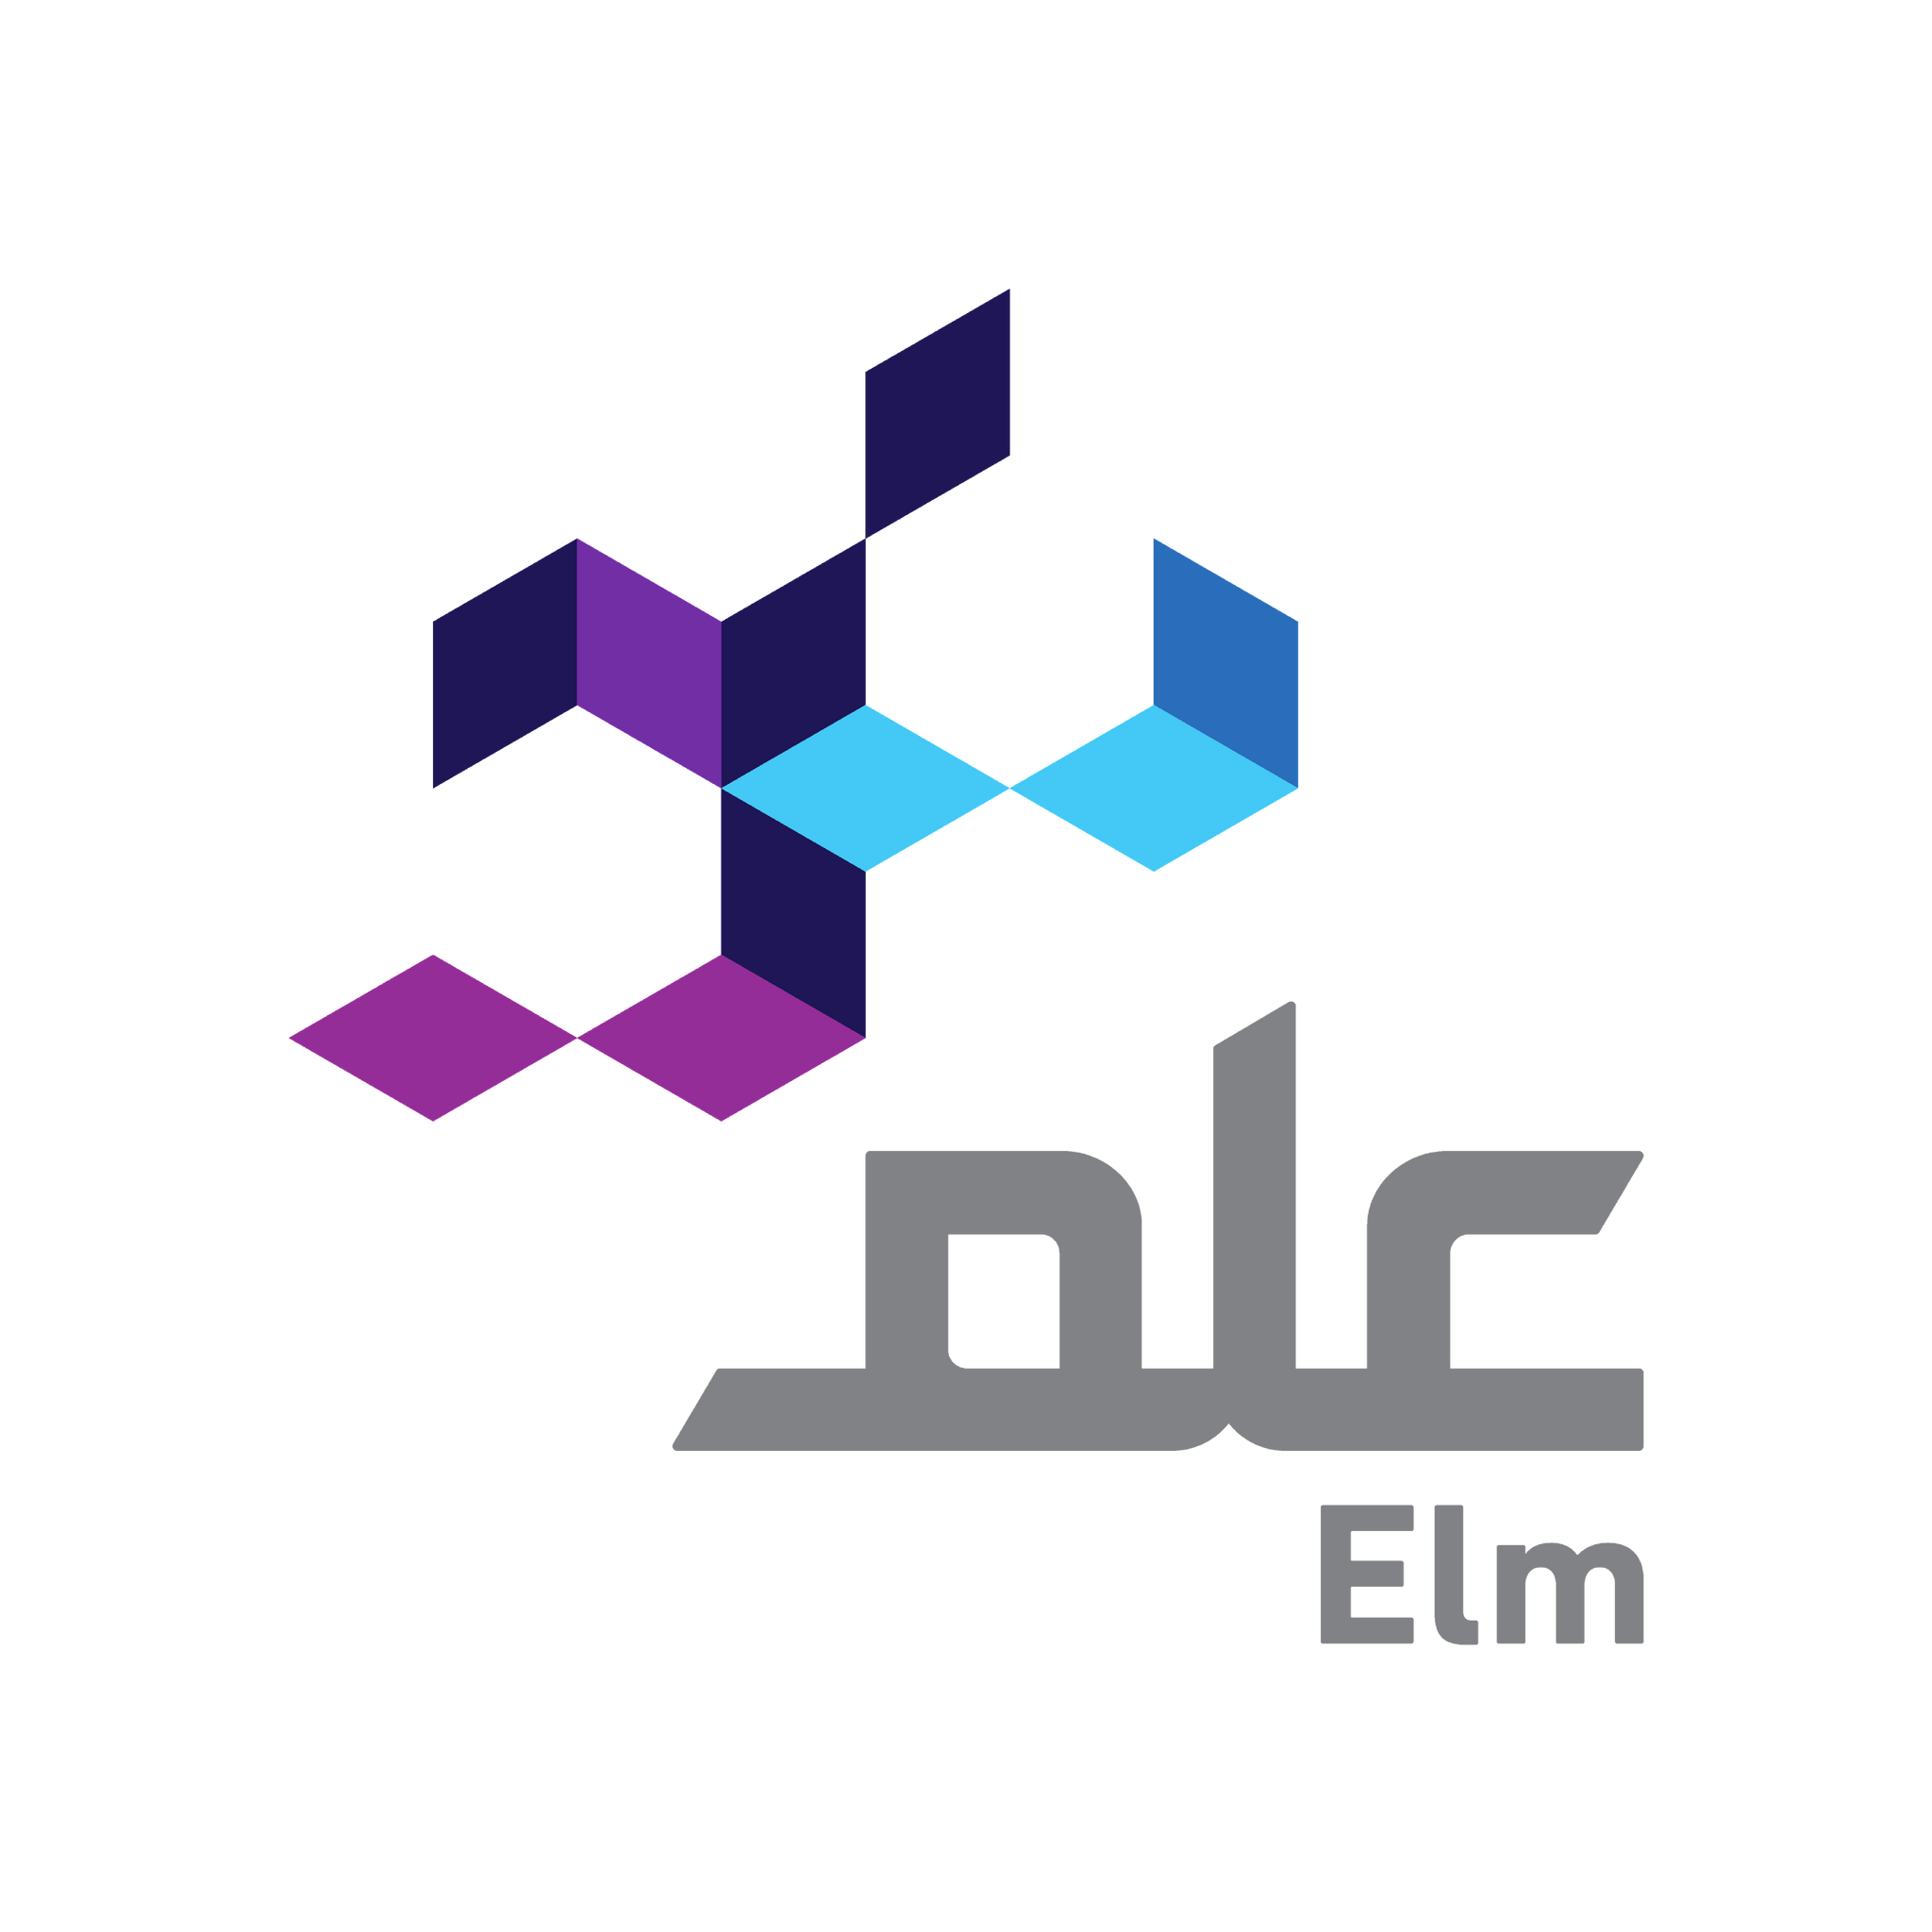 Al Elm Information Security